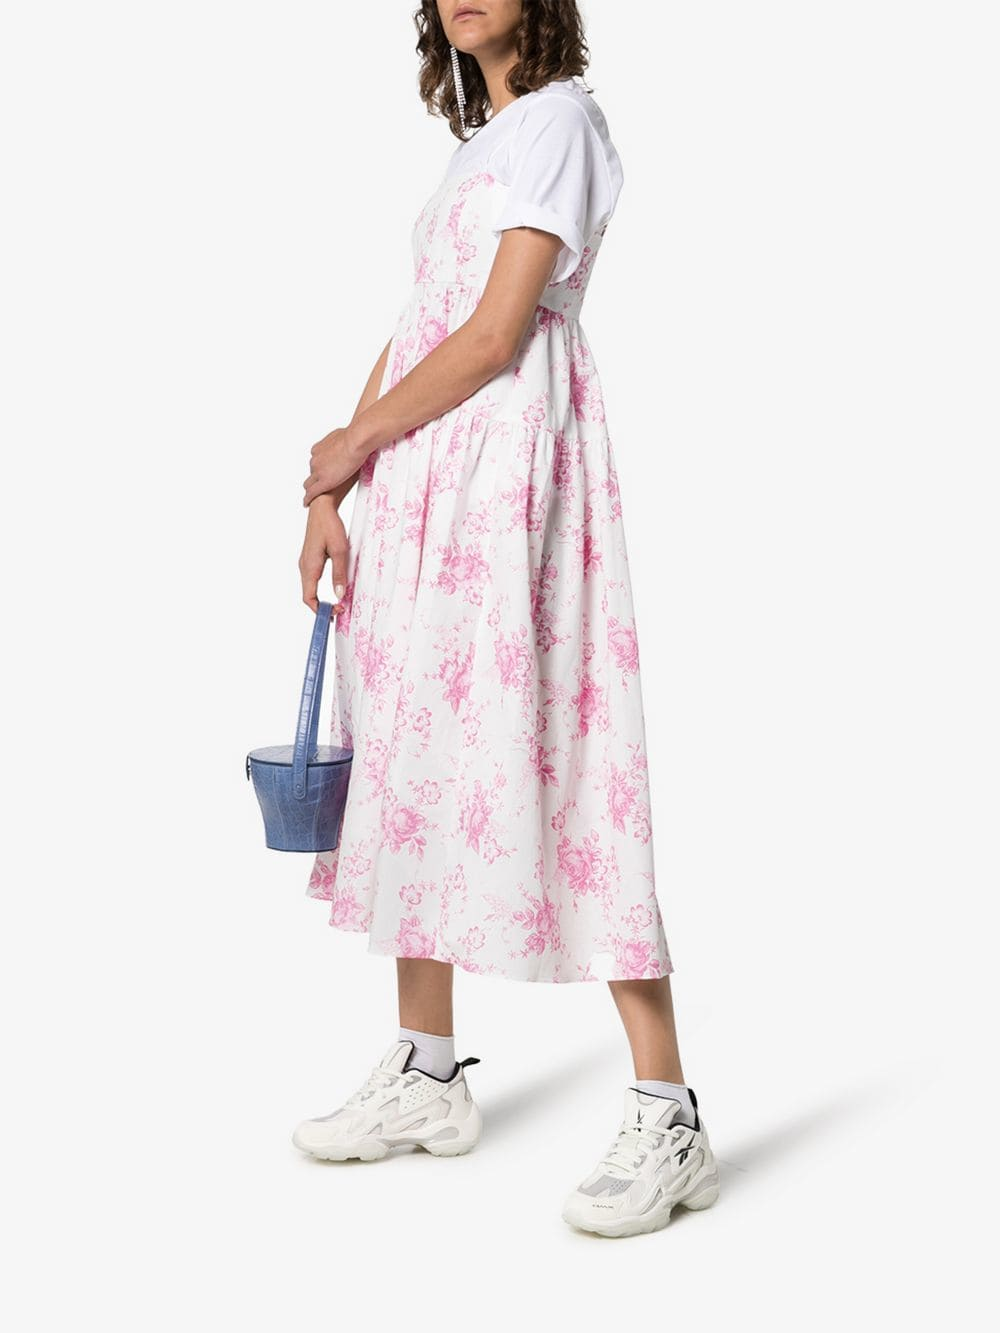 LES REVERIES Strappy Pleated Cotton Midi White / Floral Printed Dress